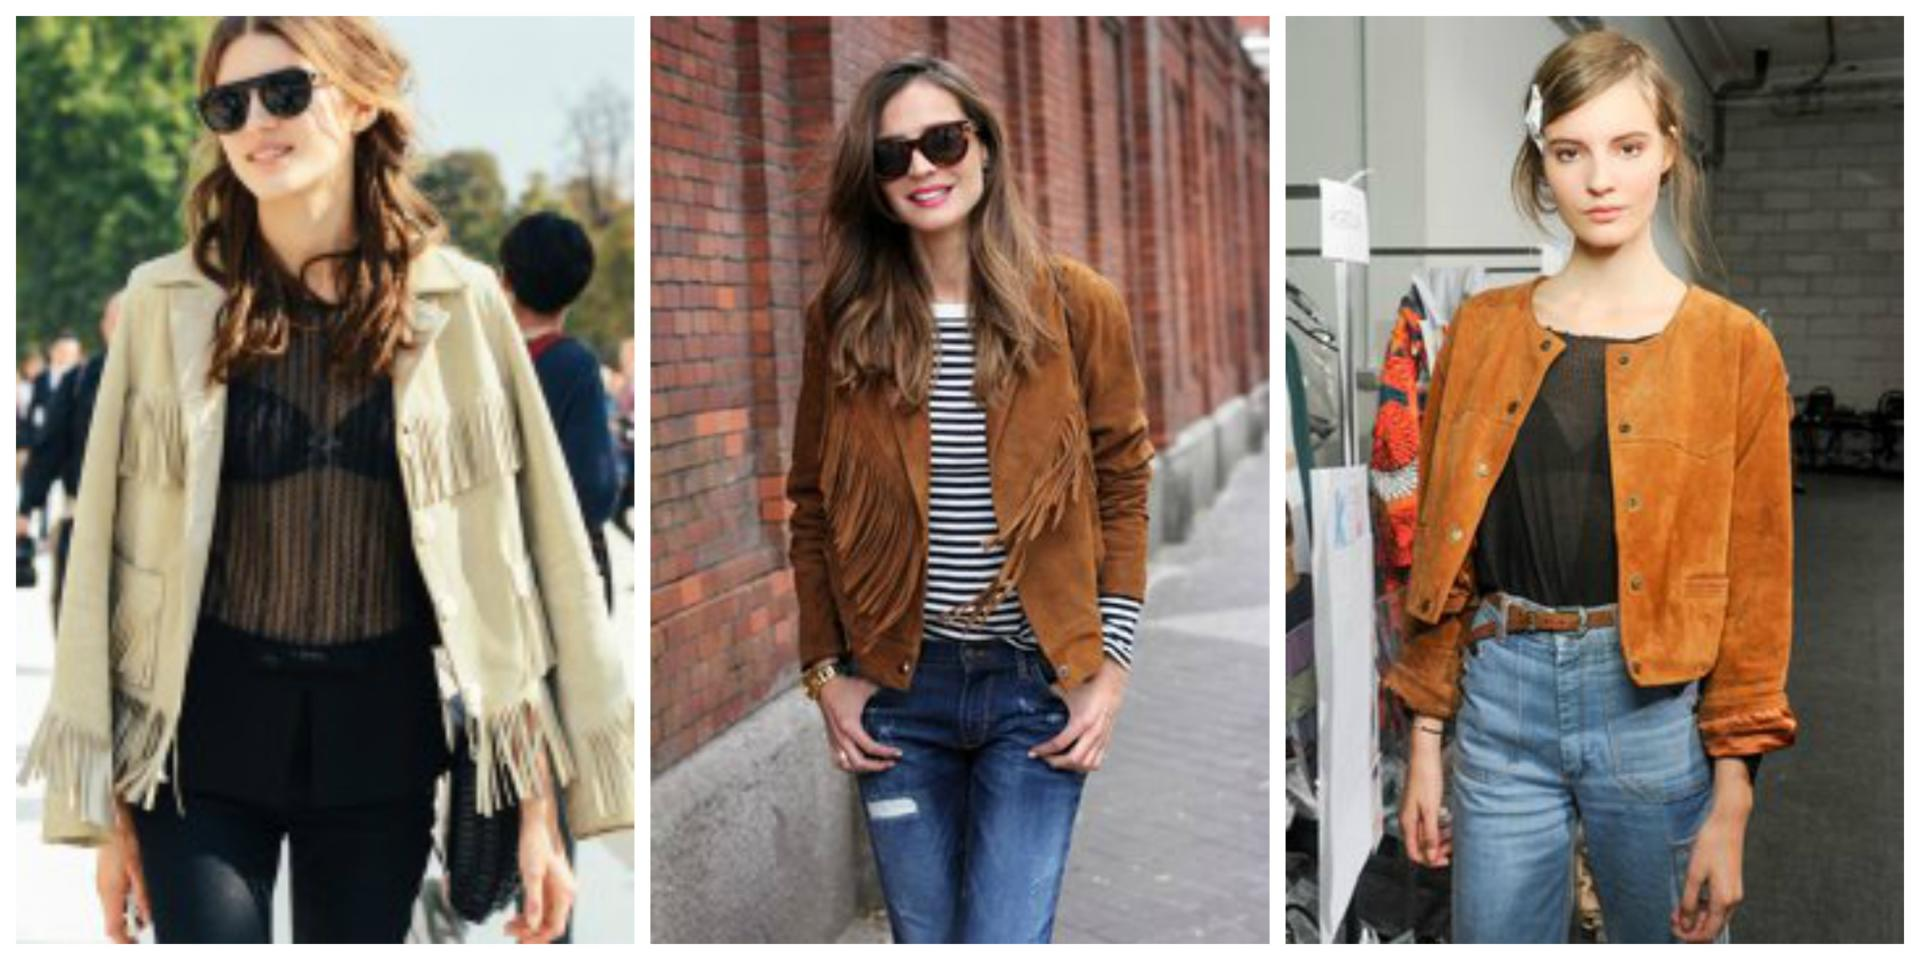 5 Ways To Wear Suede This Spring